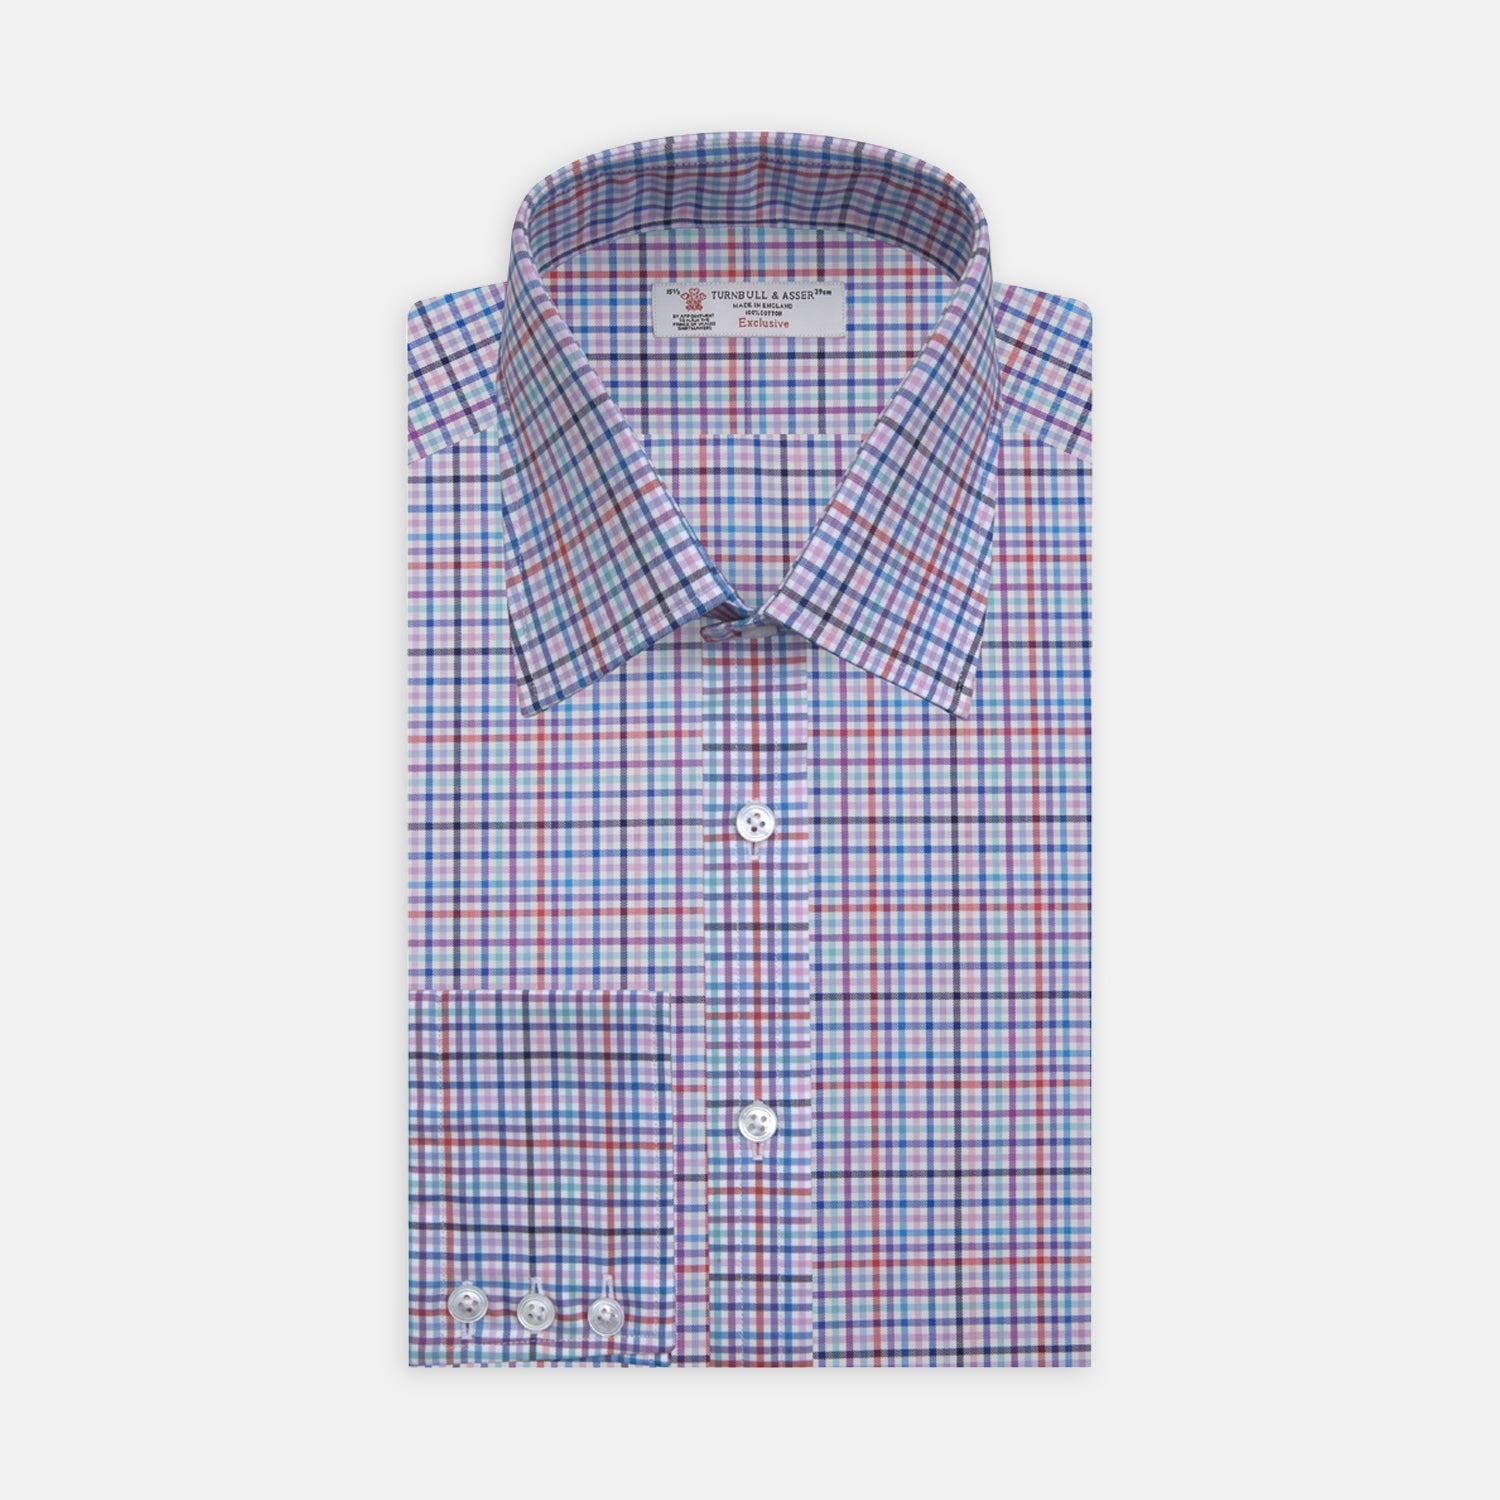 Blue, Pink and Red Graph Check Shirt with T&A Collar and 3-Button Cuffs